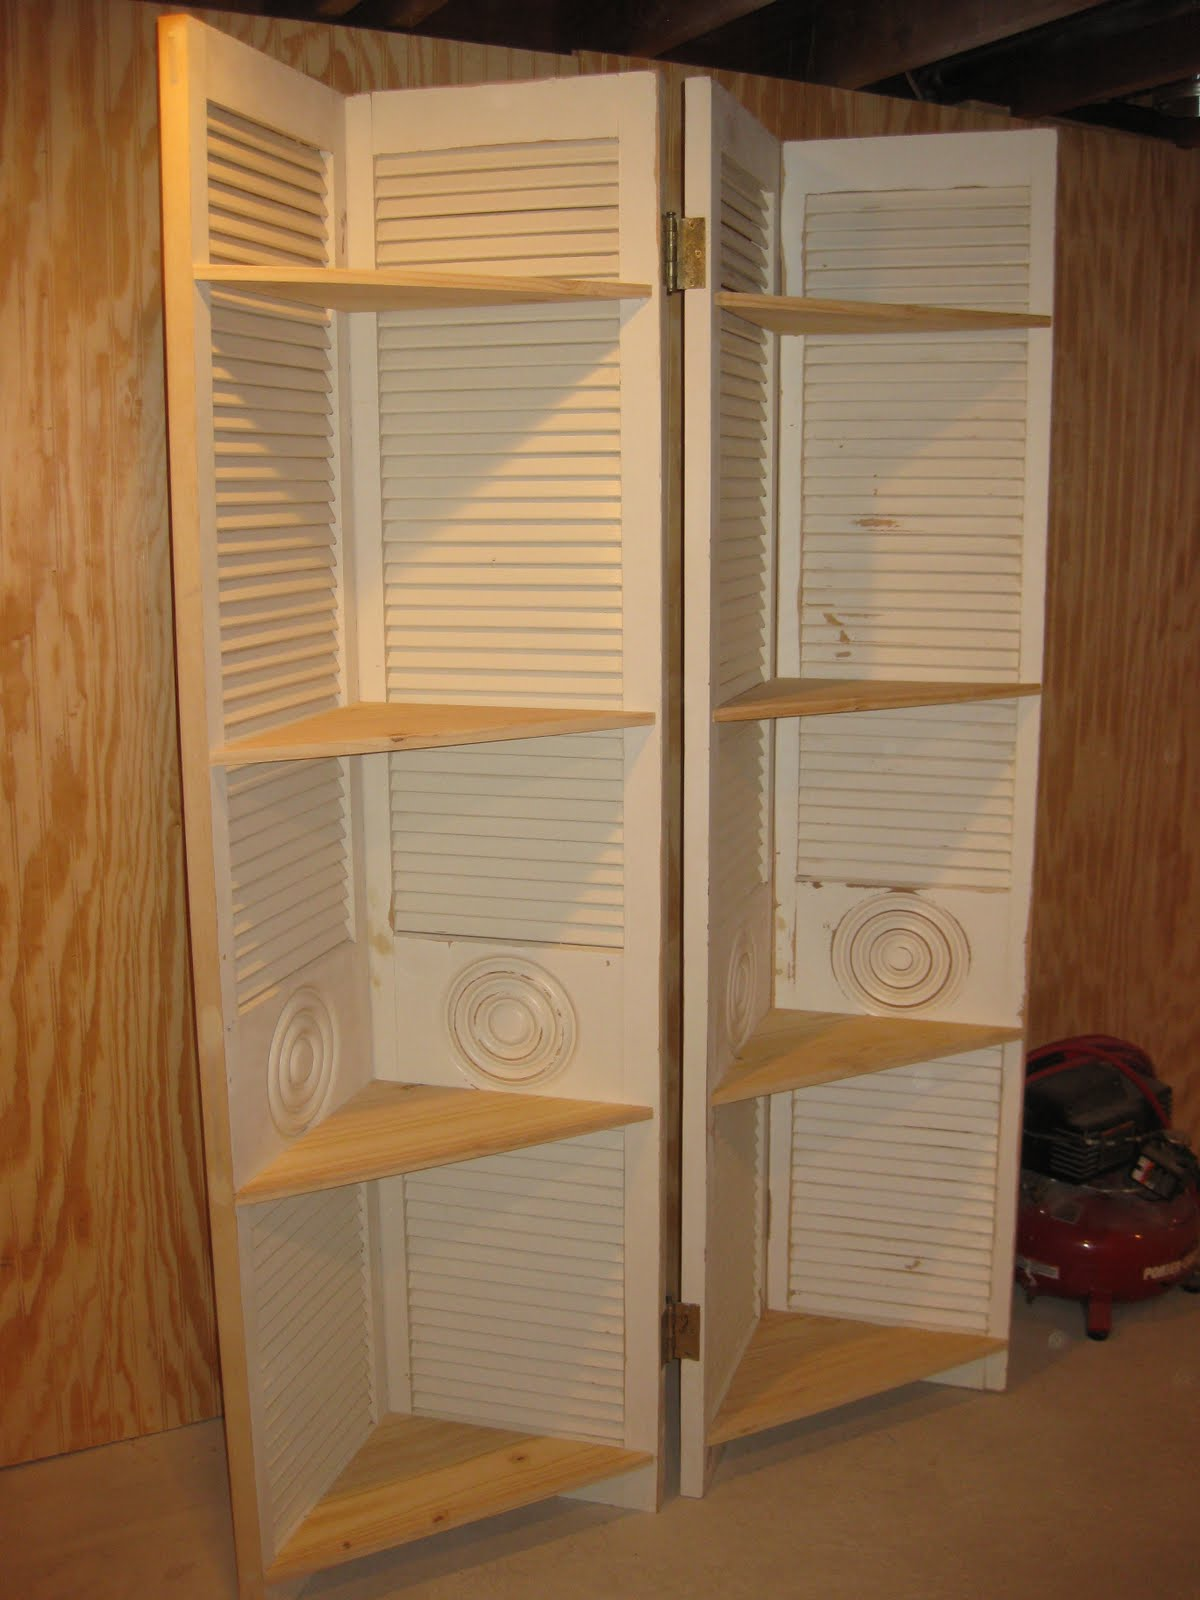 Rekaced Designs Louvered Doors Disguised As A Screen